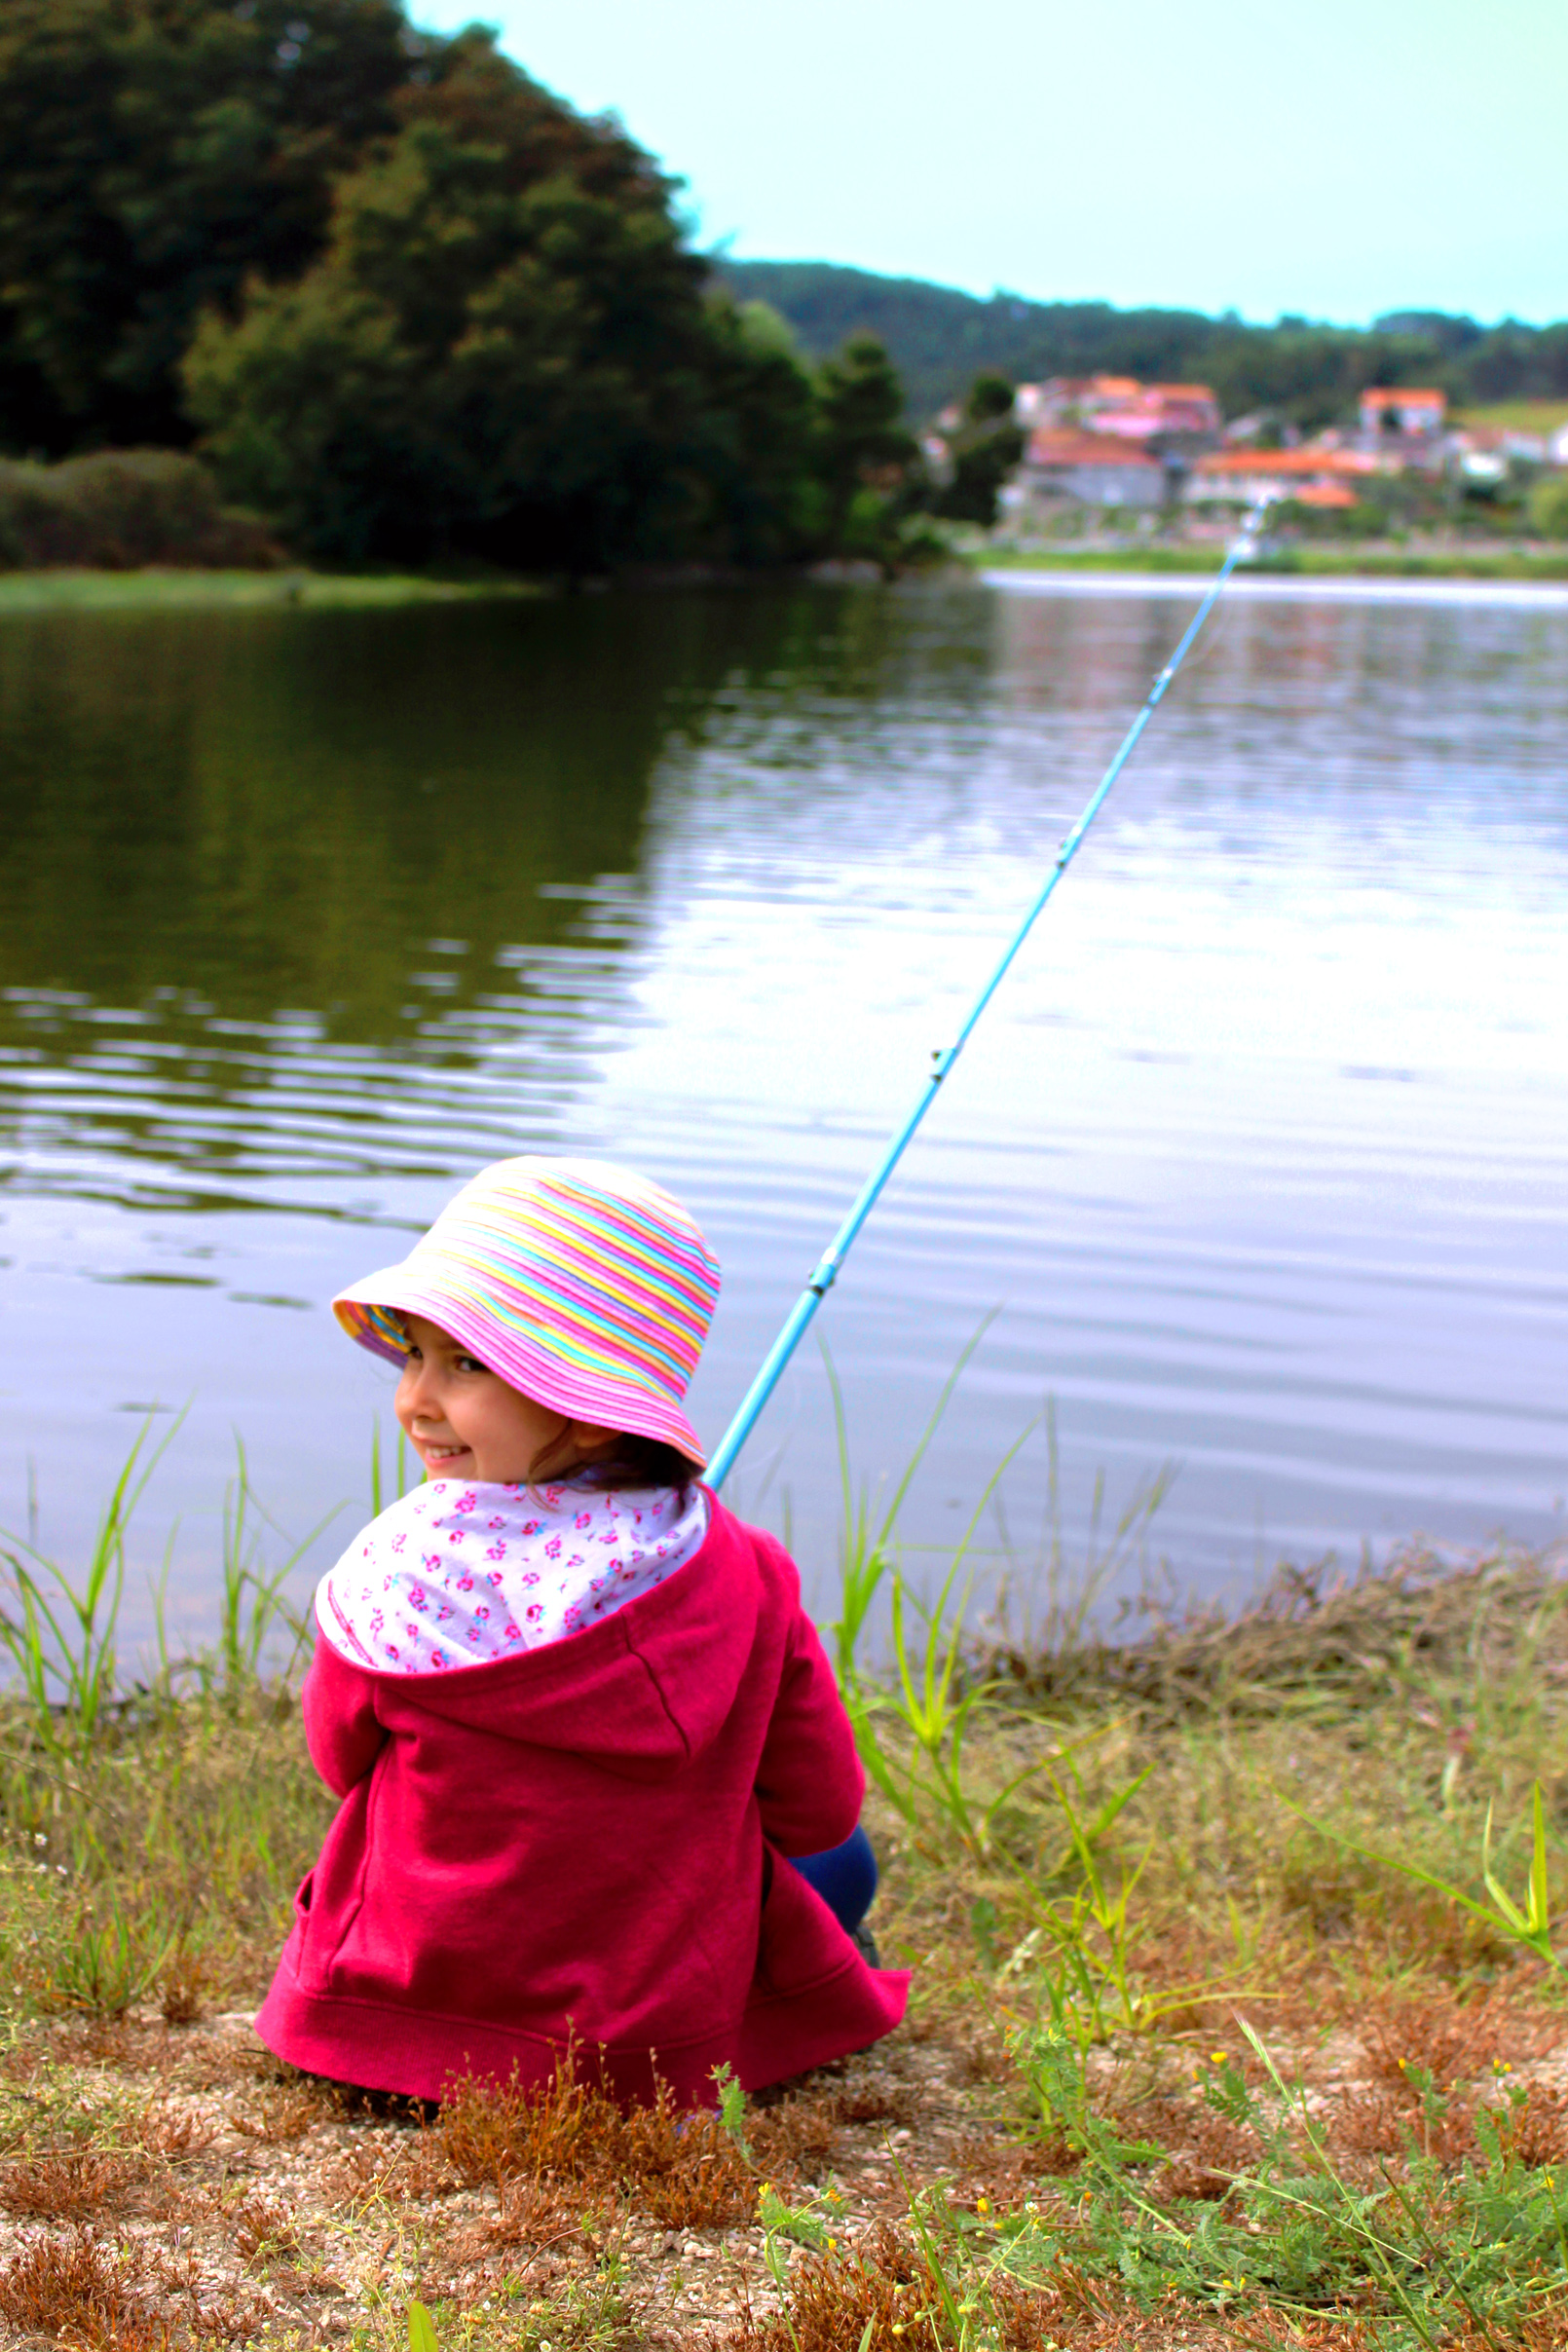 Little girl fishing and smiling, Activities, River, Nature, Outdoor, HQ Photo